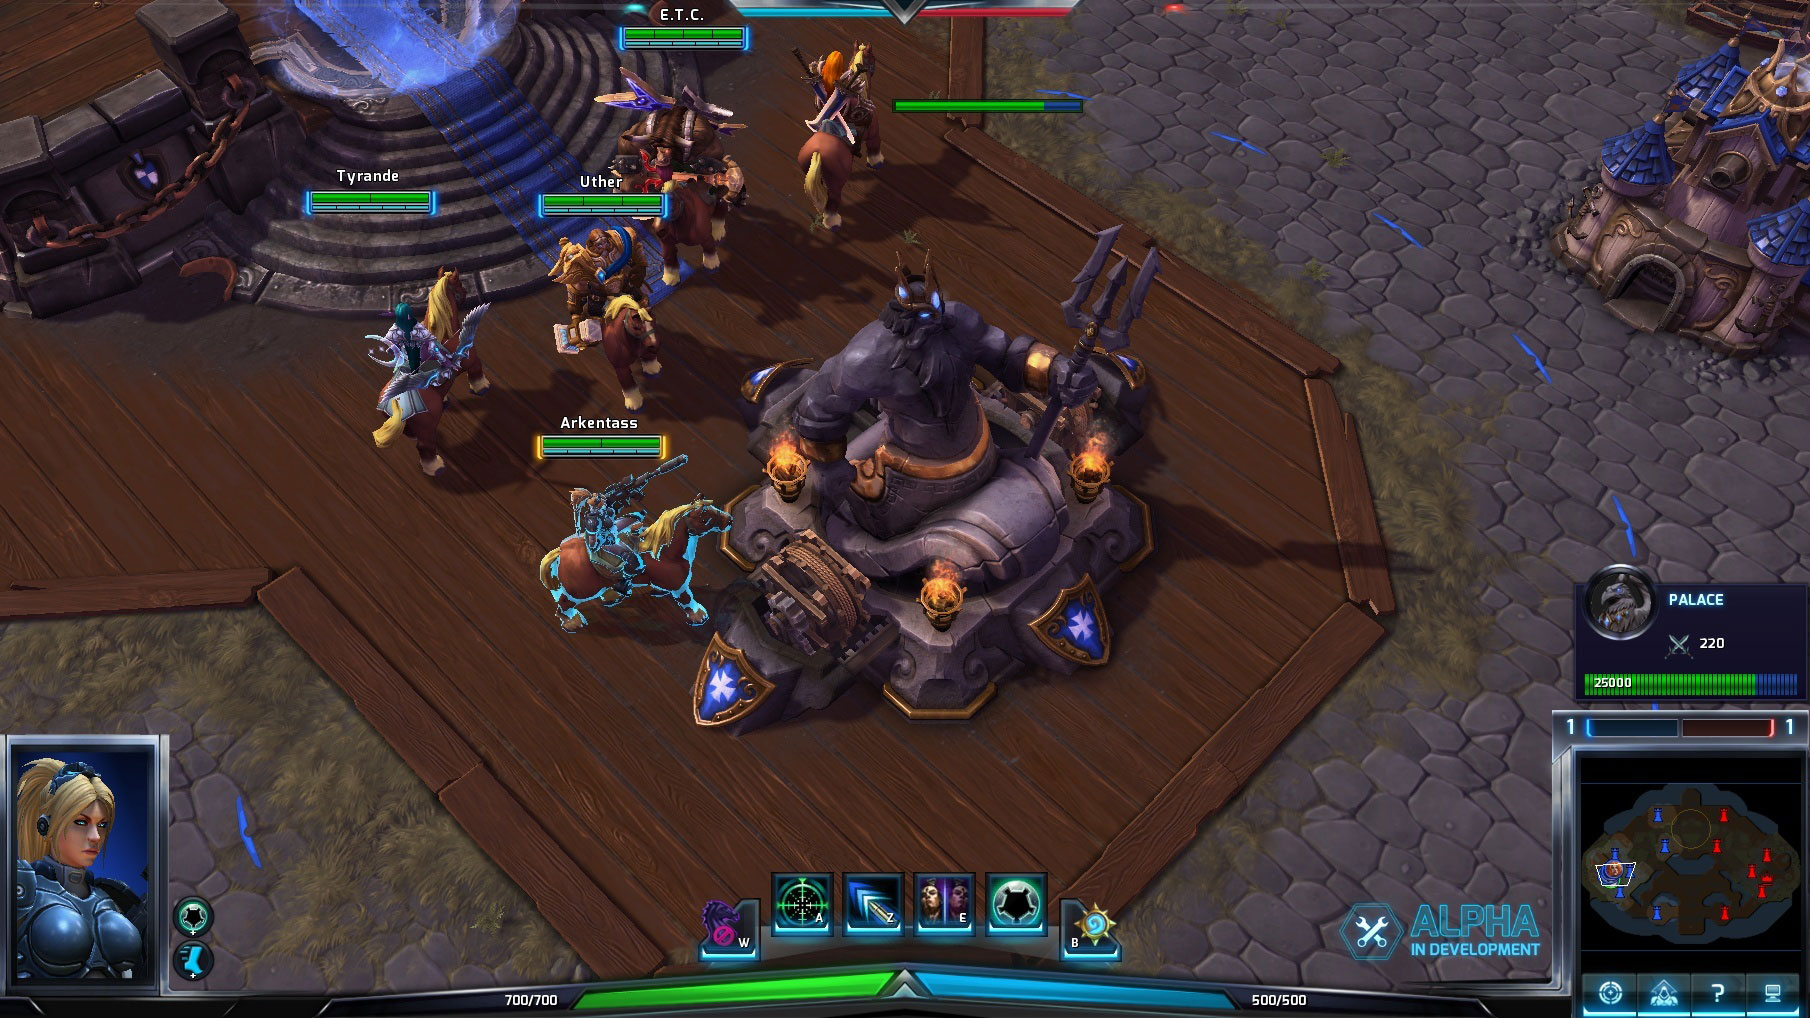 Le palace dans Heroes of the Storm.